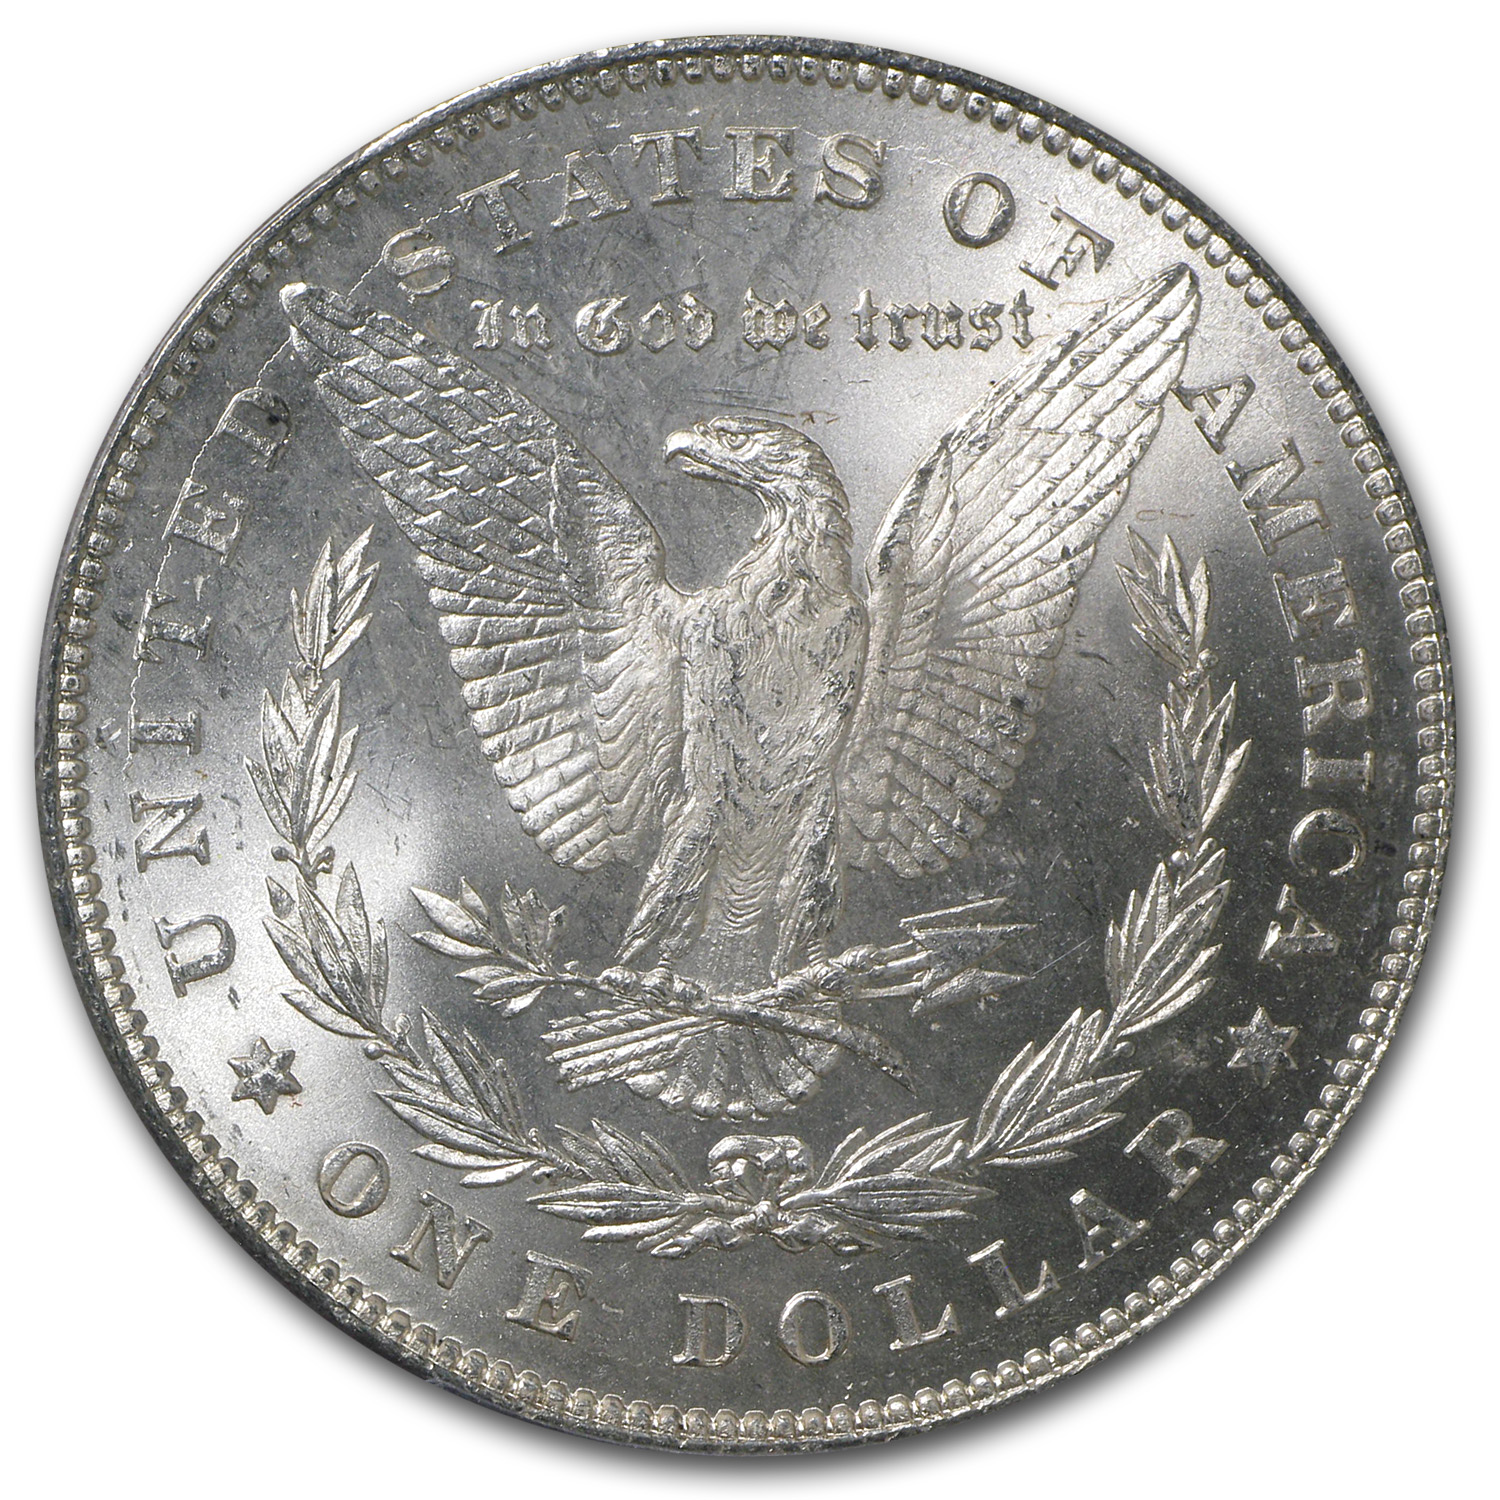 1878 Morgan Dollar - 7/8 Tailfeathers Strong MS-63 PCGS